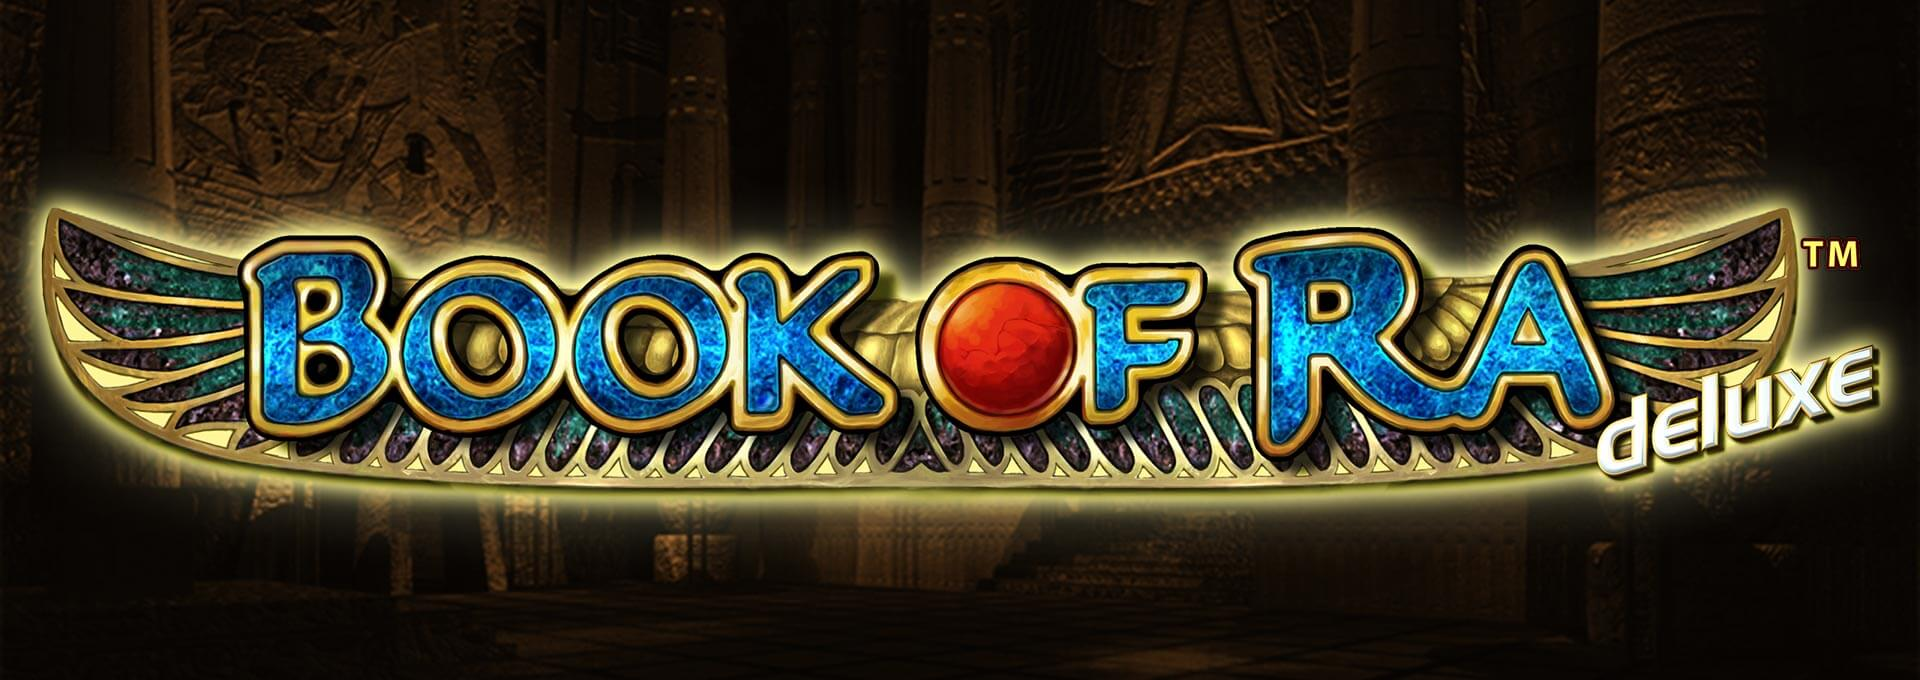 online casino gambling site book of ra 2